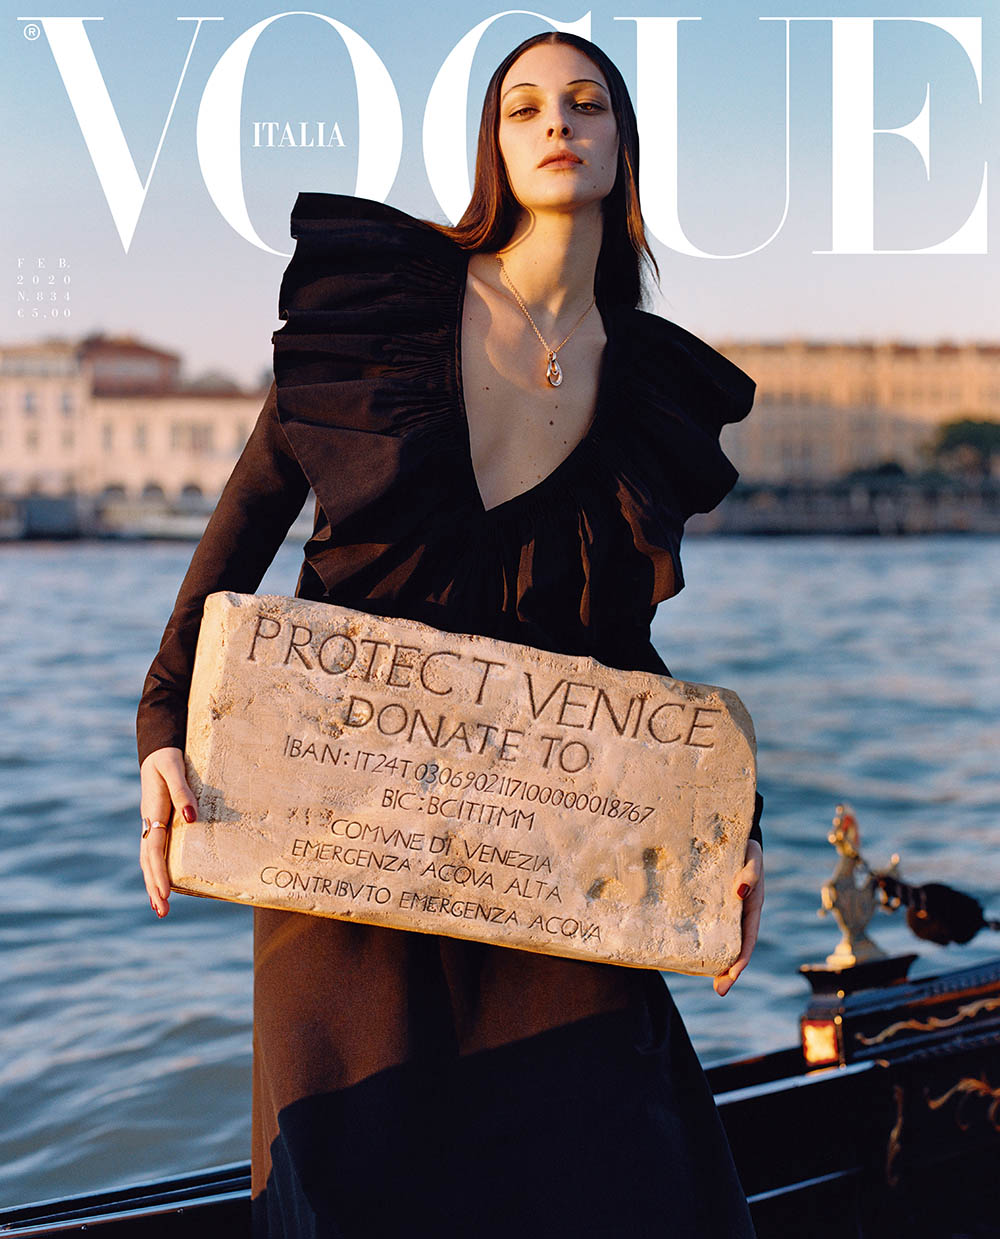 Vittoria Ceretti covers Vogue Italia February 2020 by Oliver Hadlee Pearch